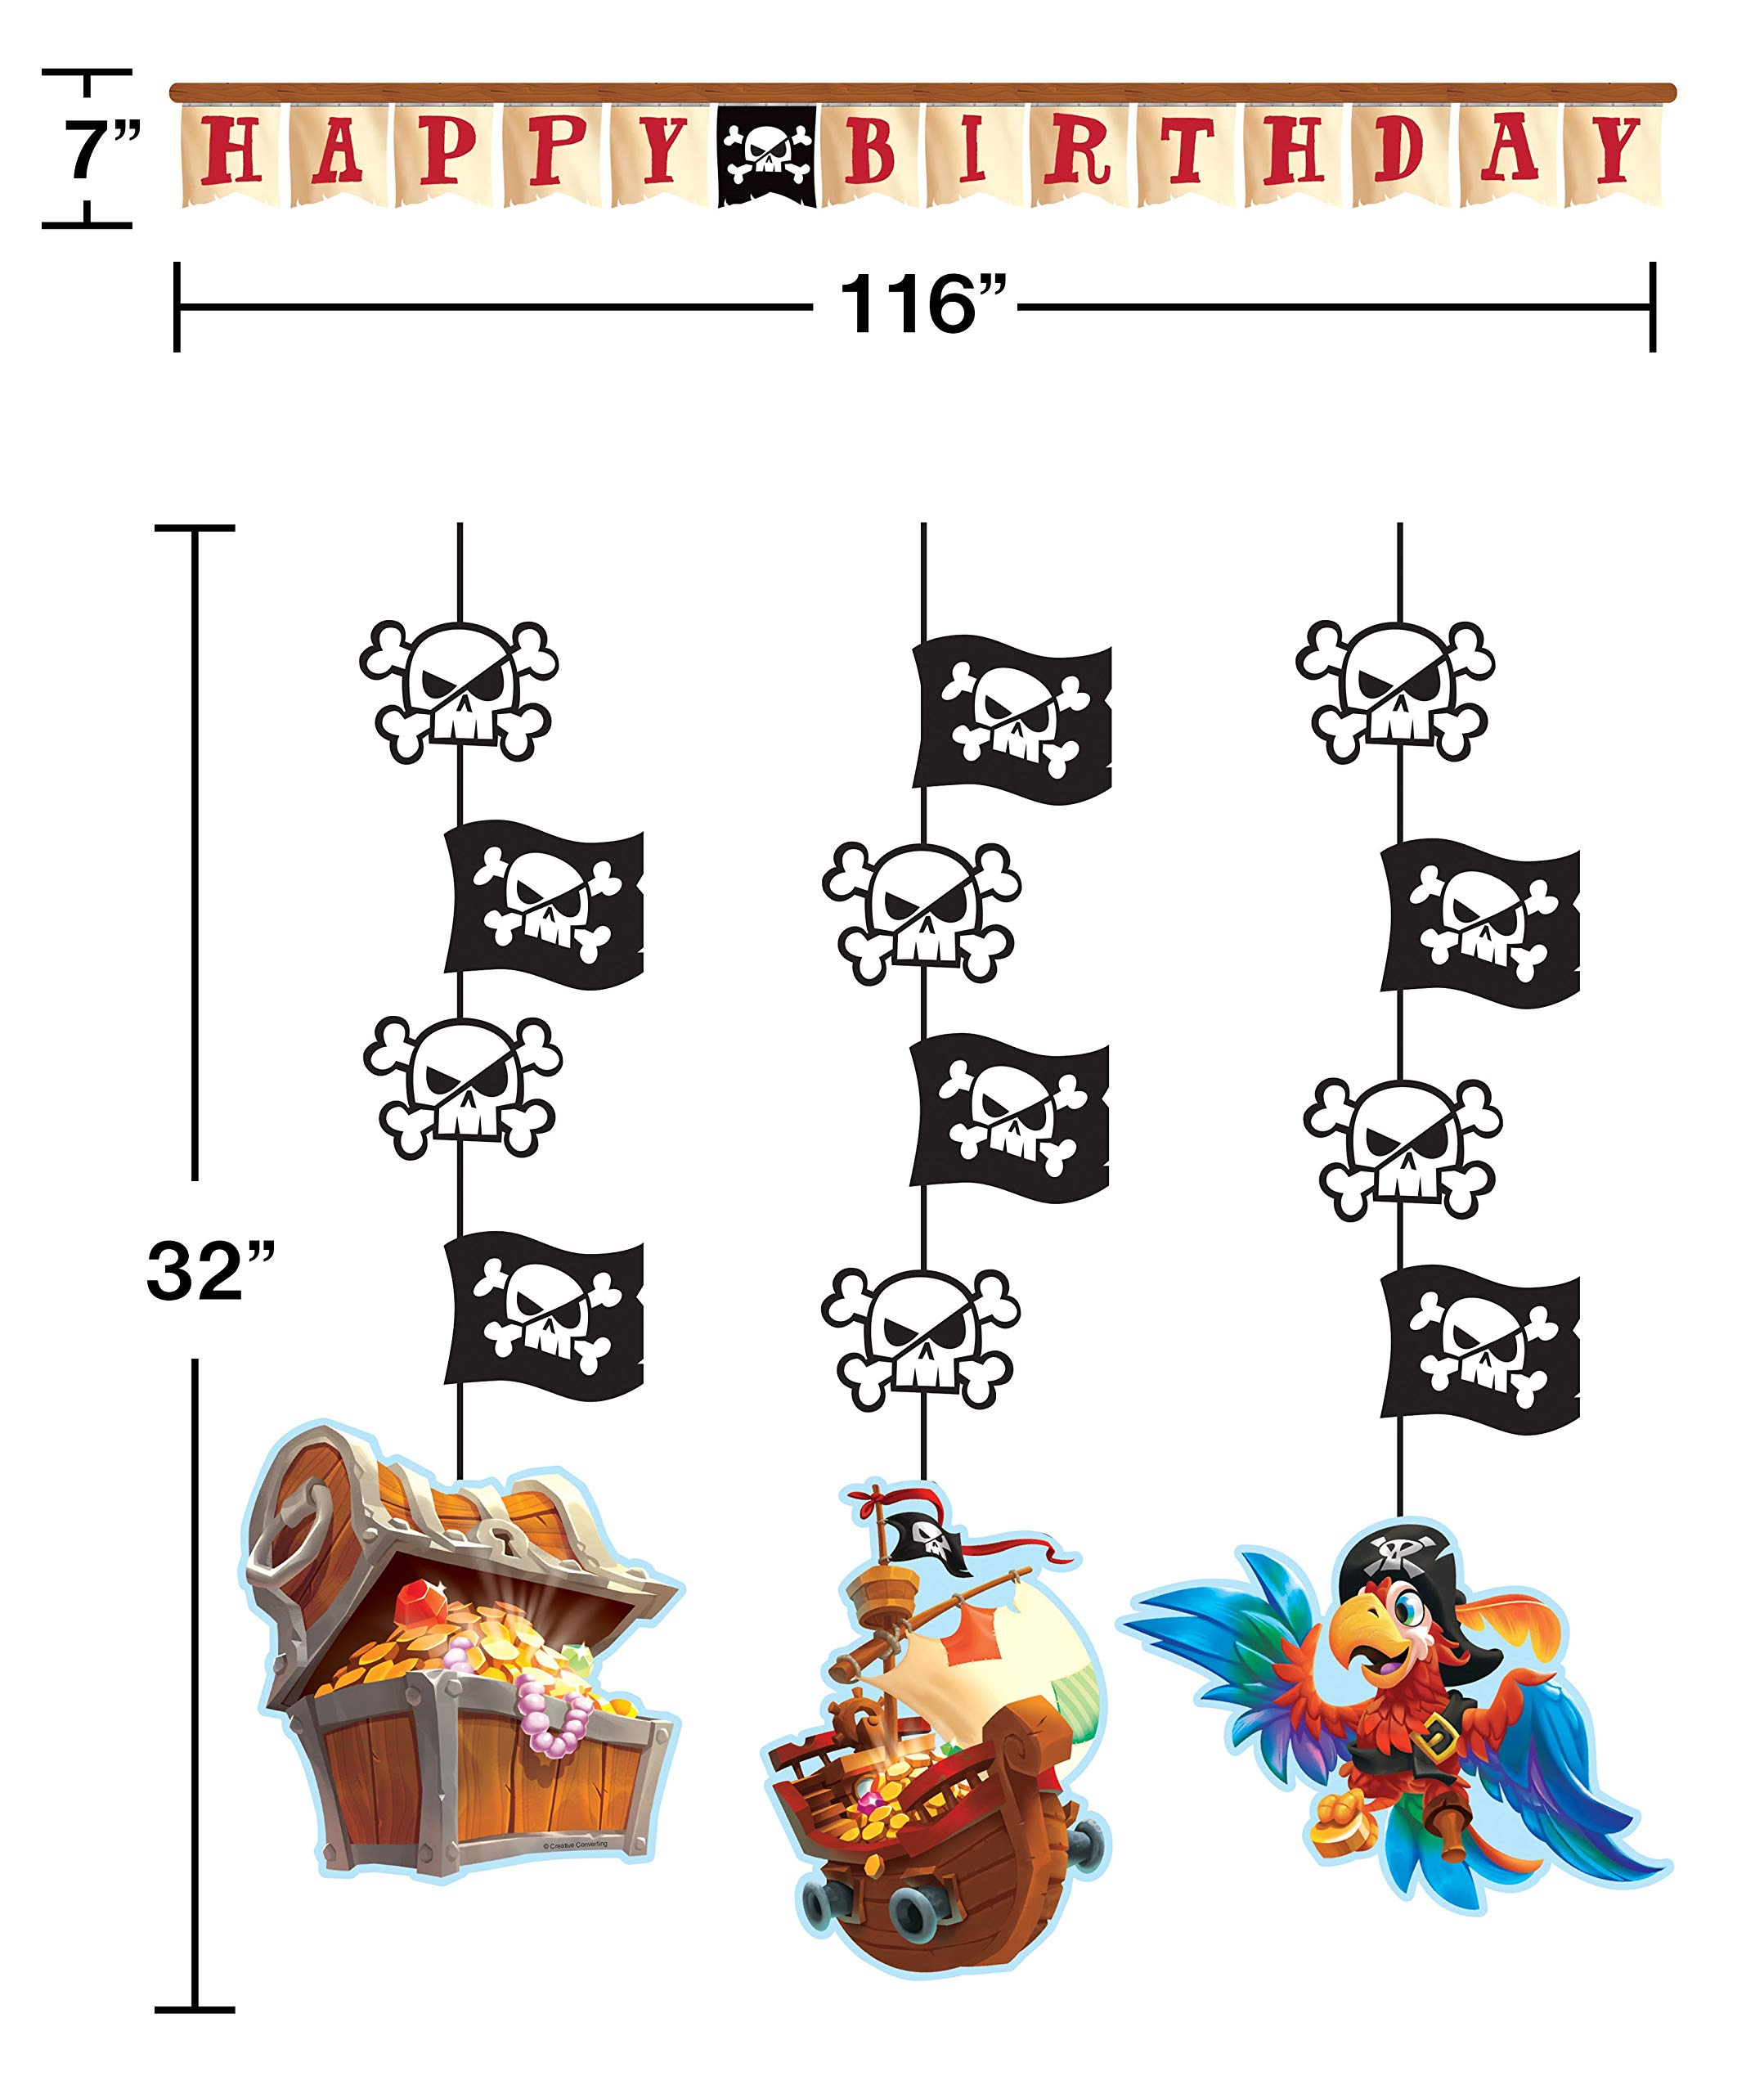 Pirate Happy Birthday Banner (116'' Long) With 3 Pcs Pirate Treasure Hanging Cutouts | Ideal For Kids, Adults Birthday Party Hanging Decoration & Pirate Party Supplies